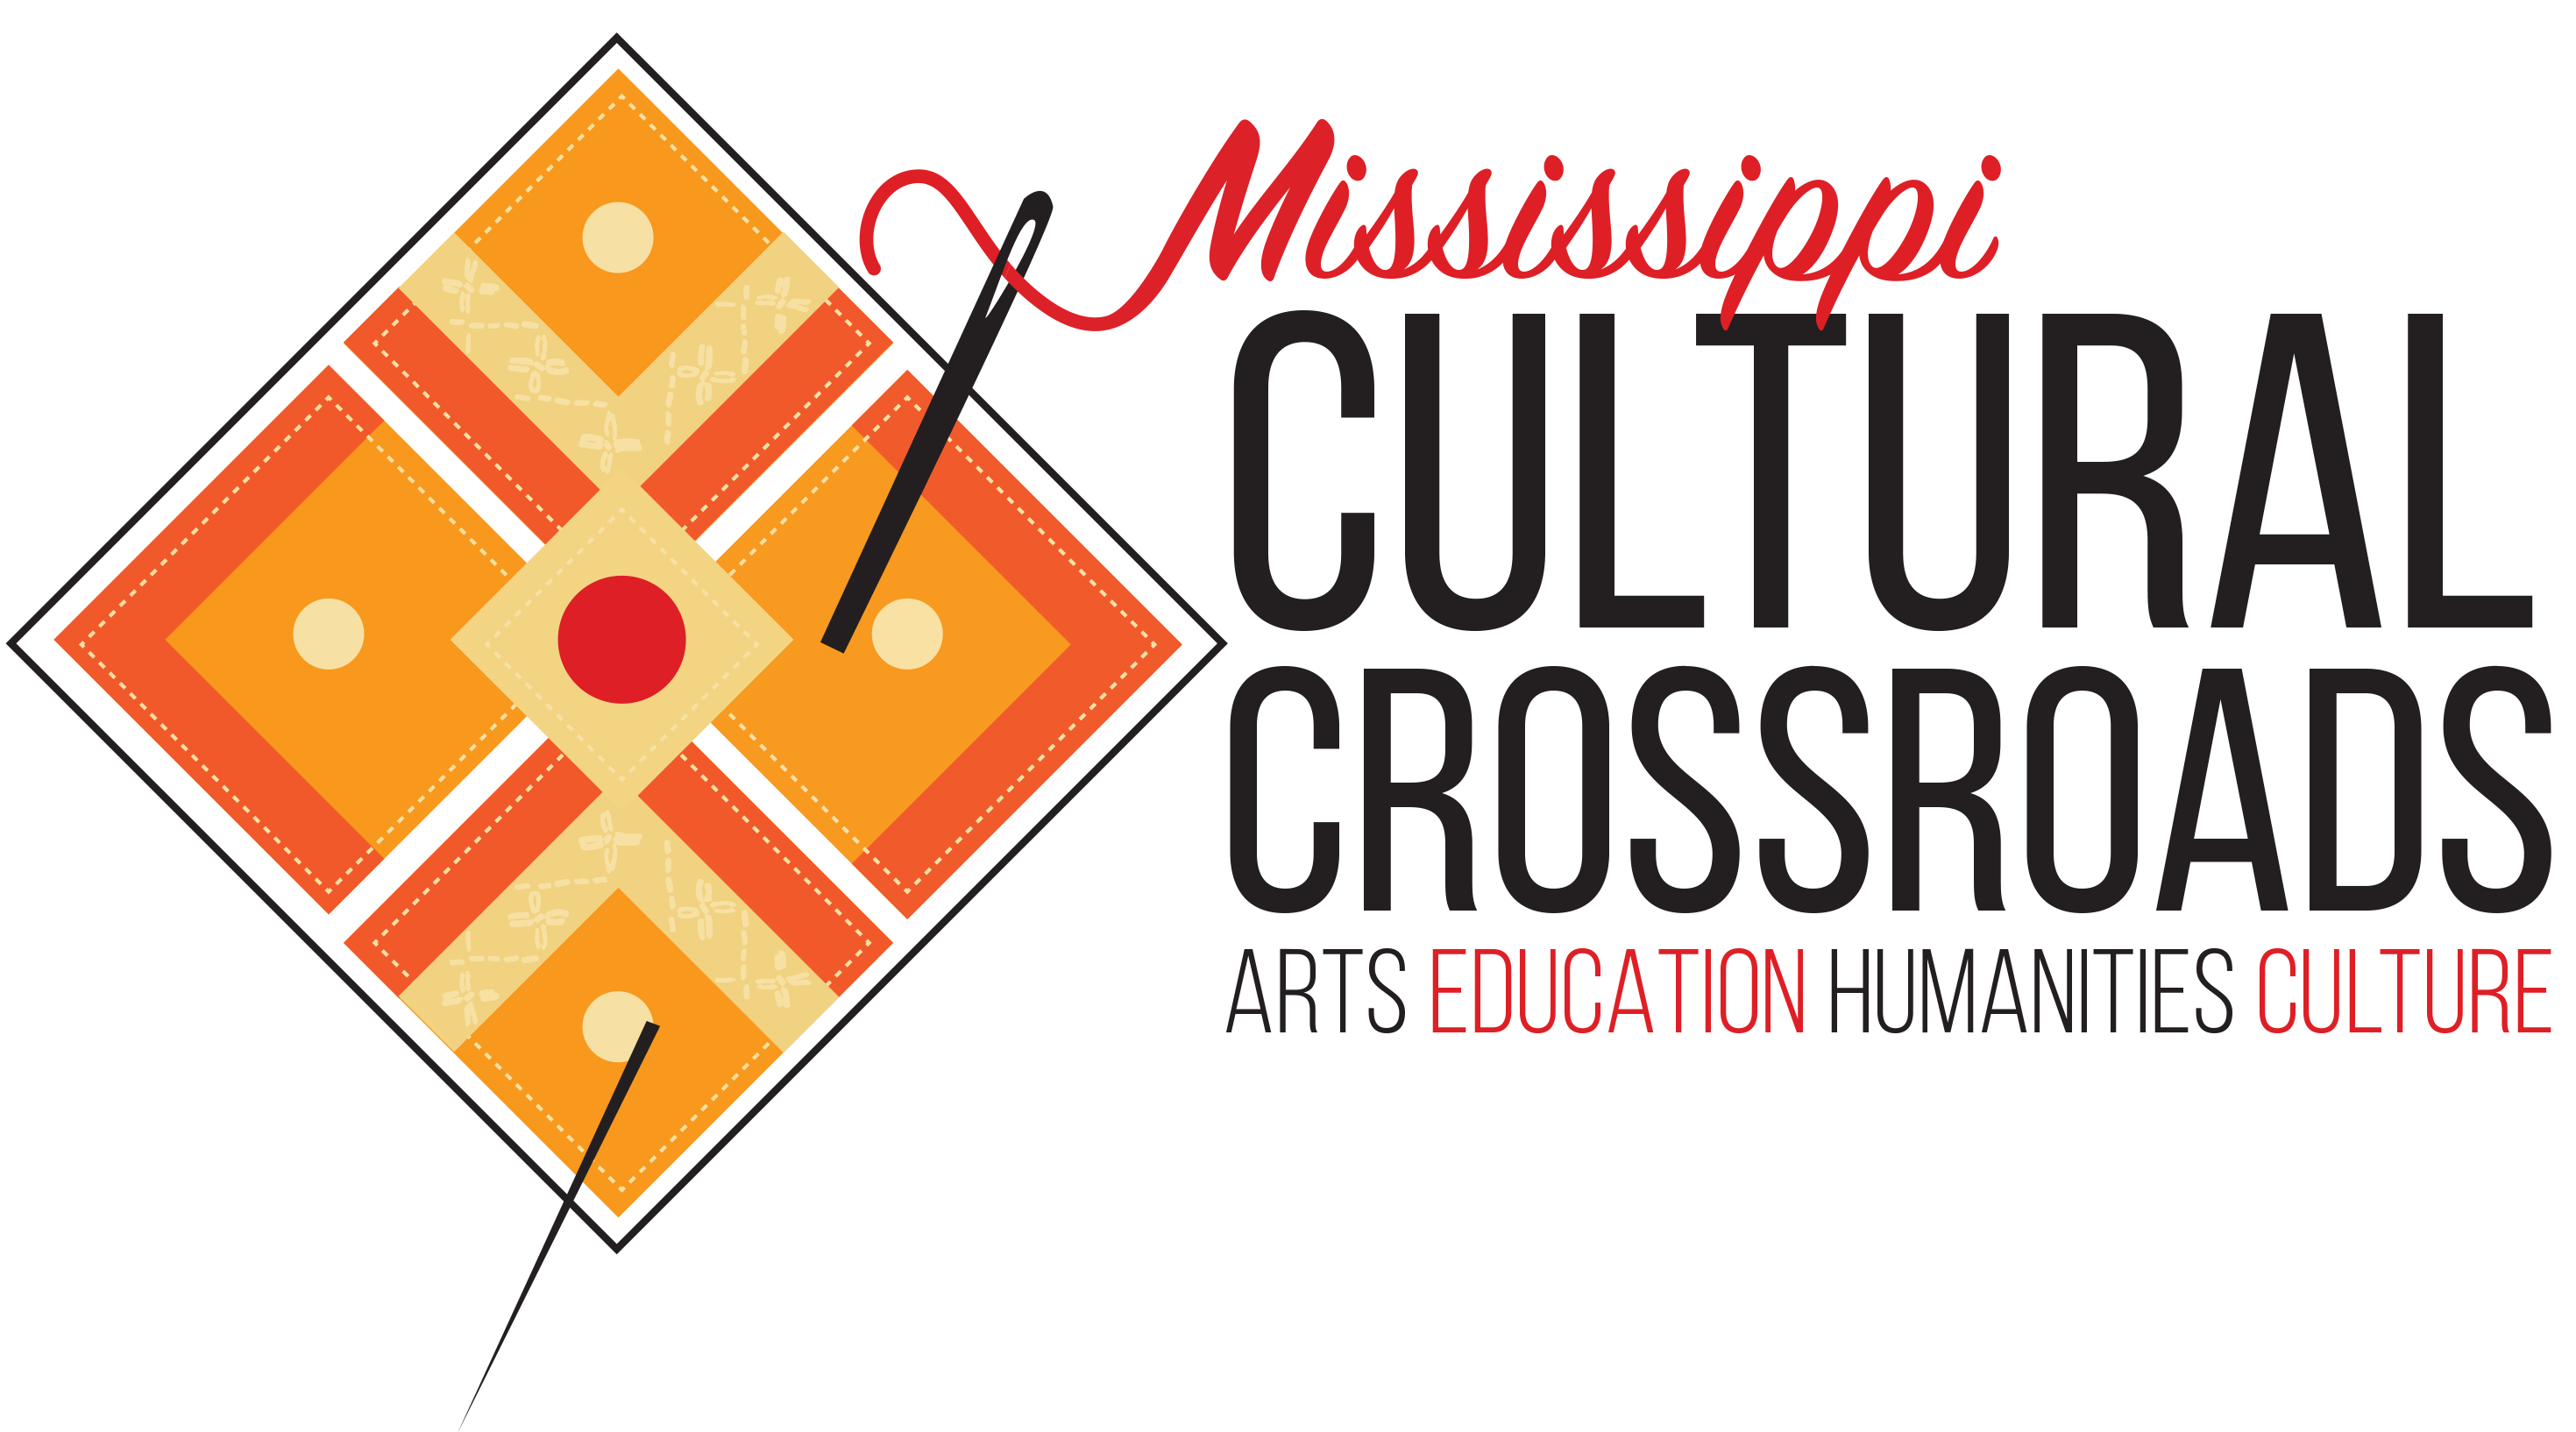 MS Cultural Crossroads